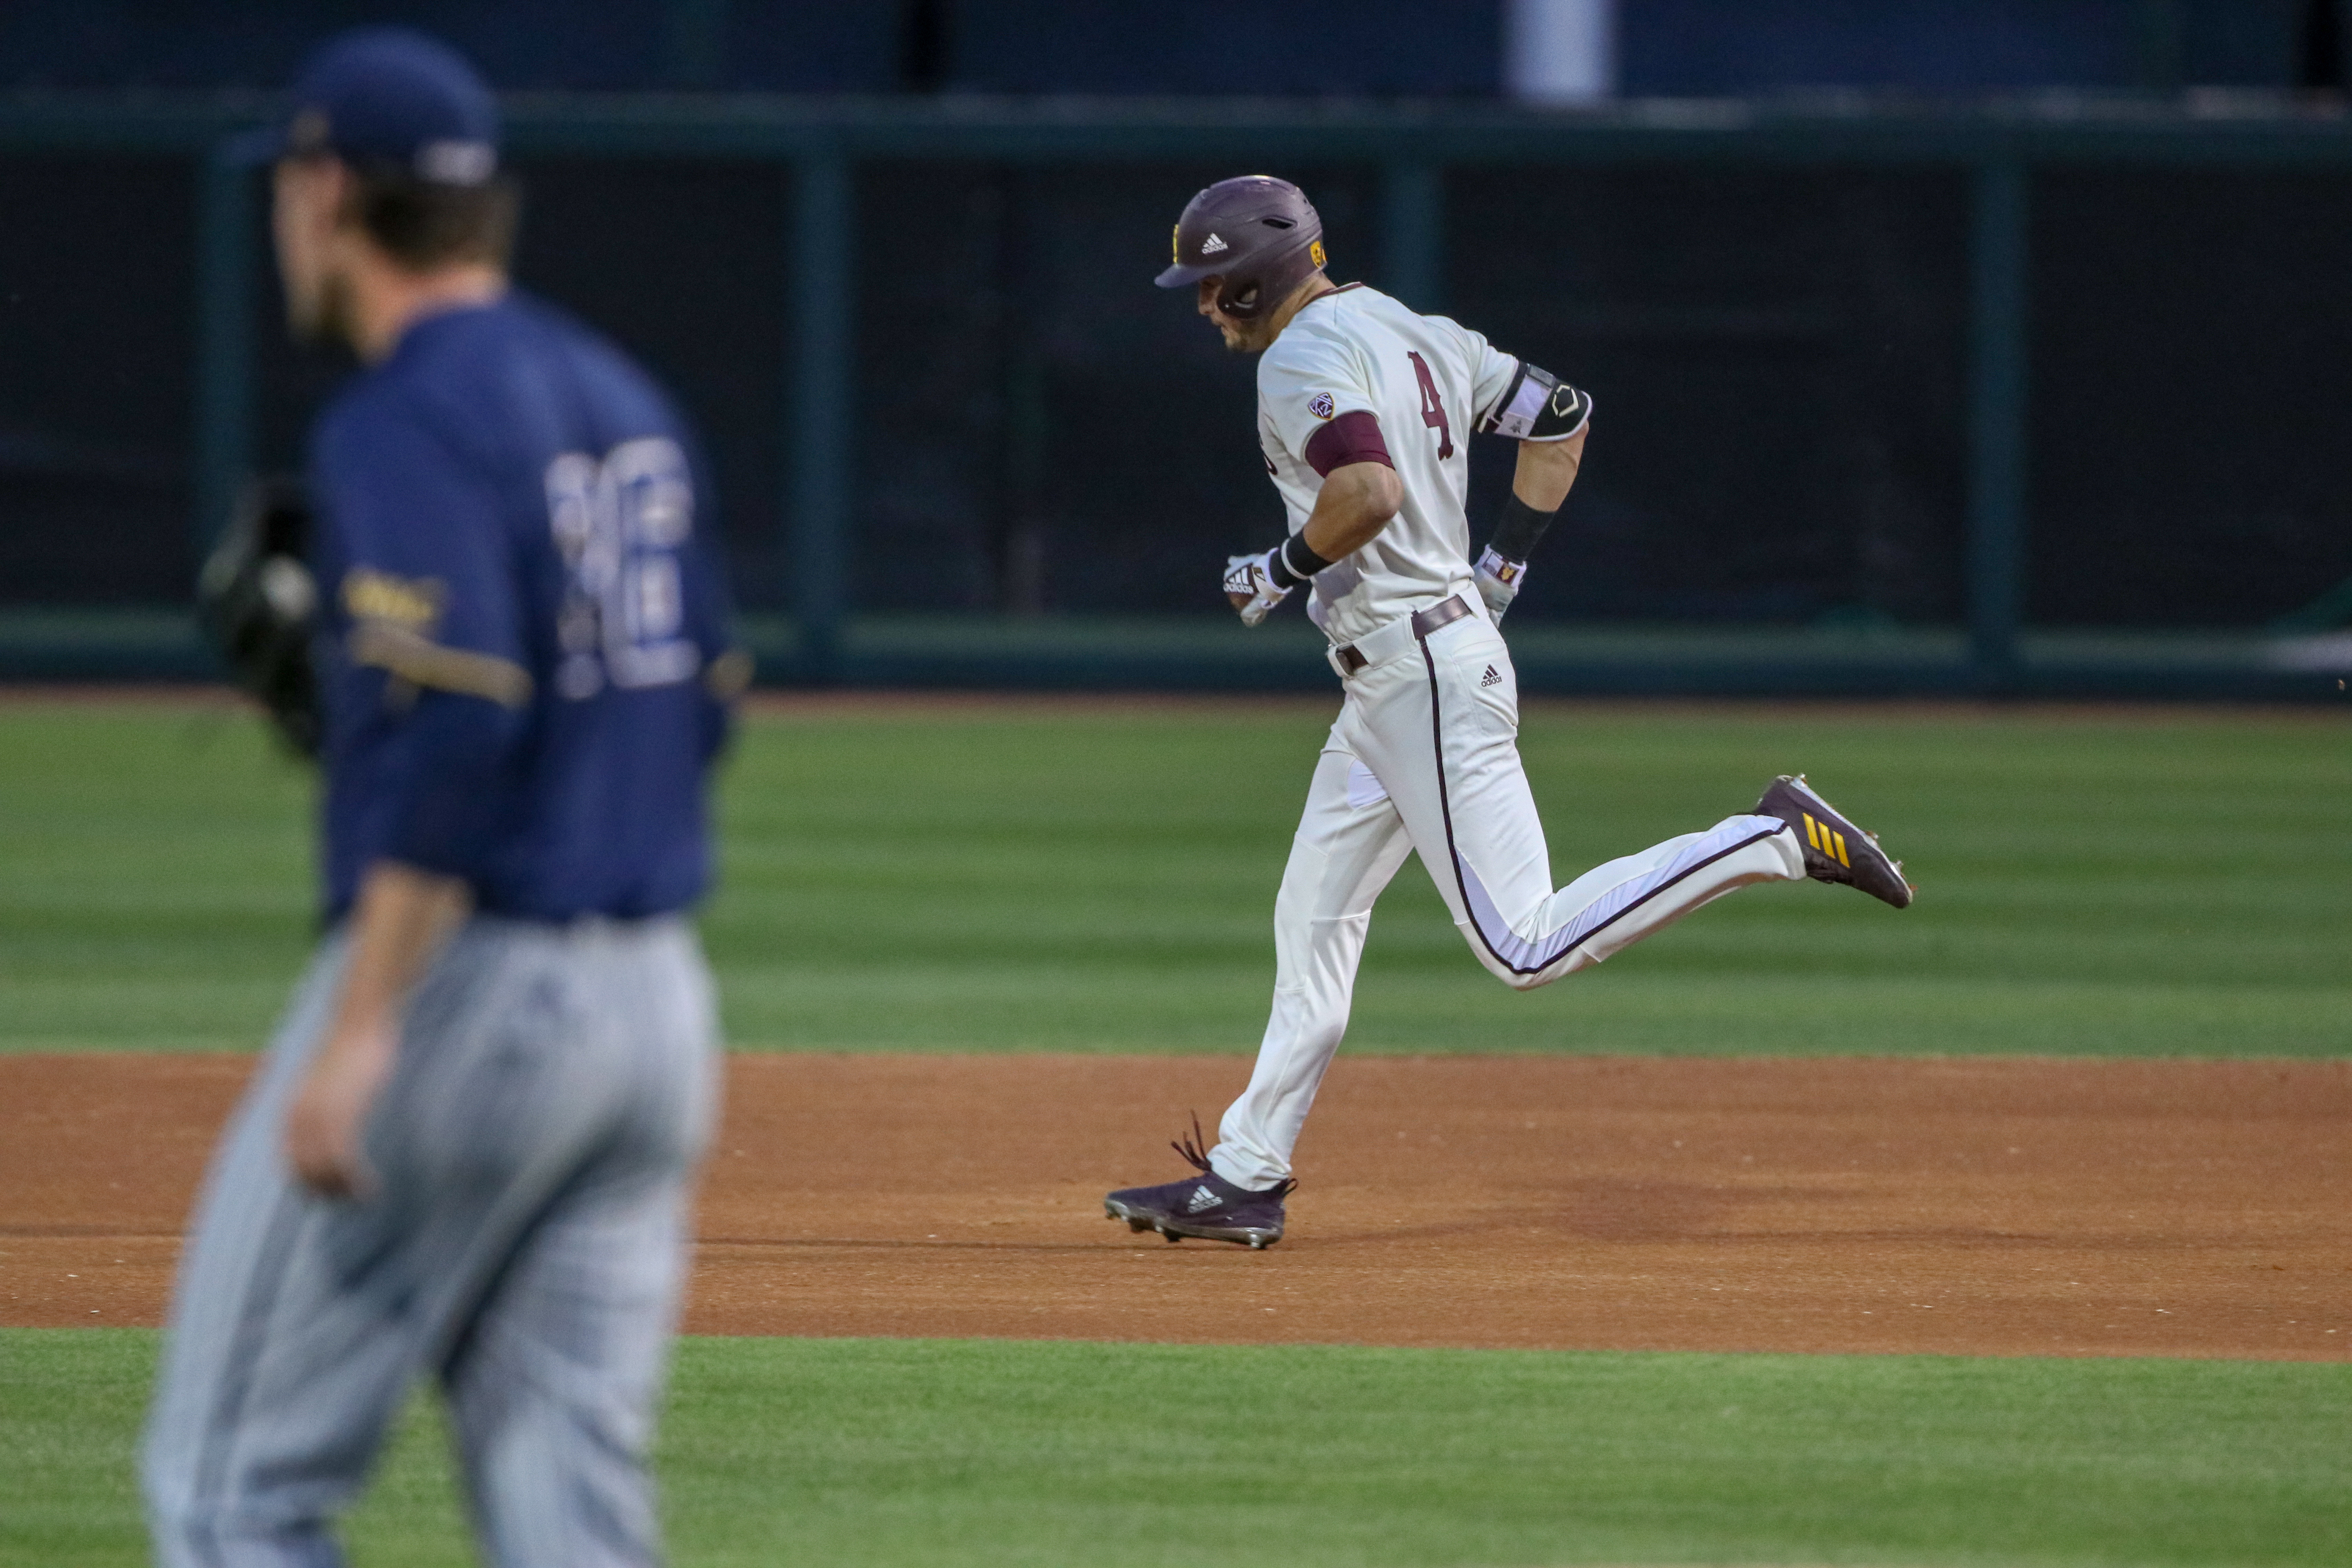 ASU Baseball: Bishop's two bombs propel Devils to 15-9